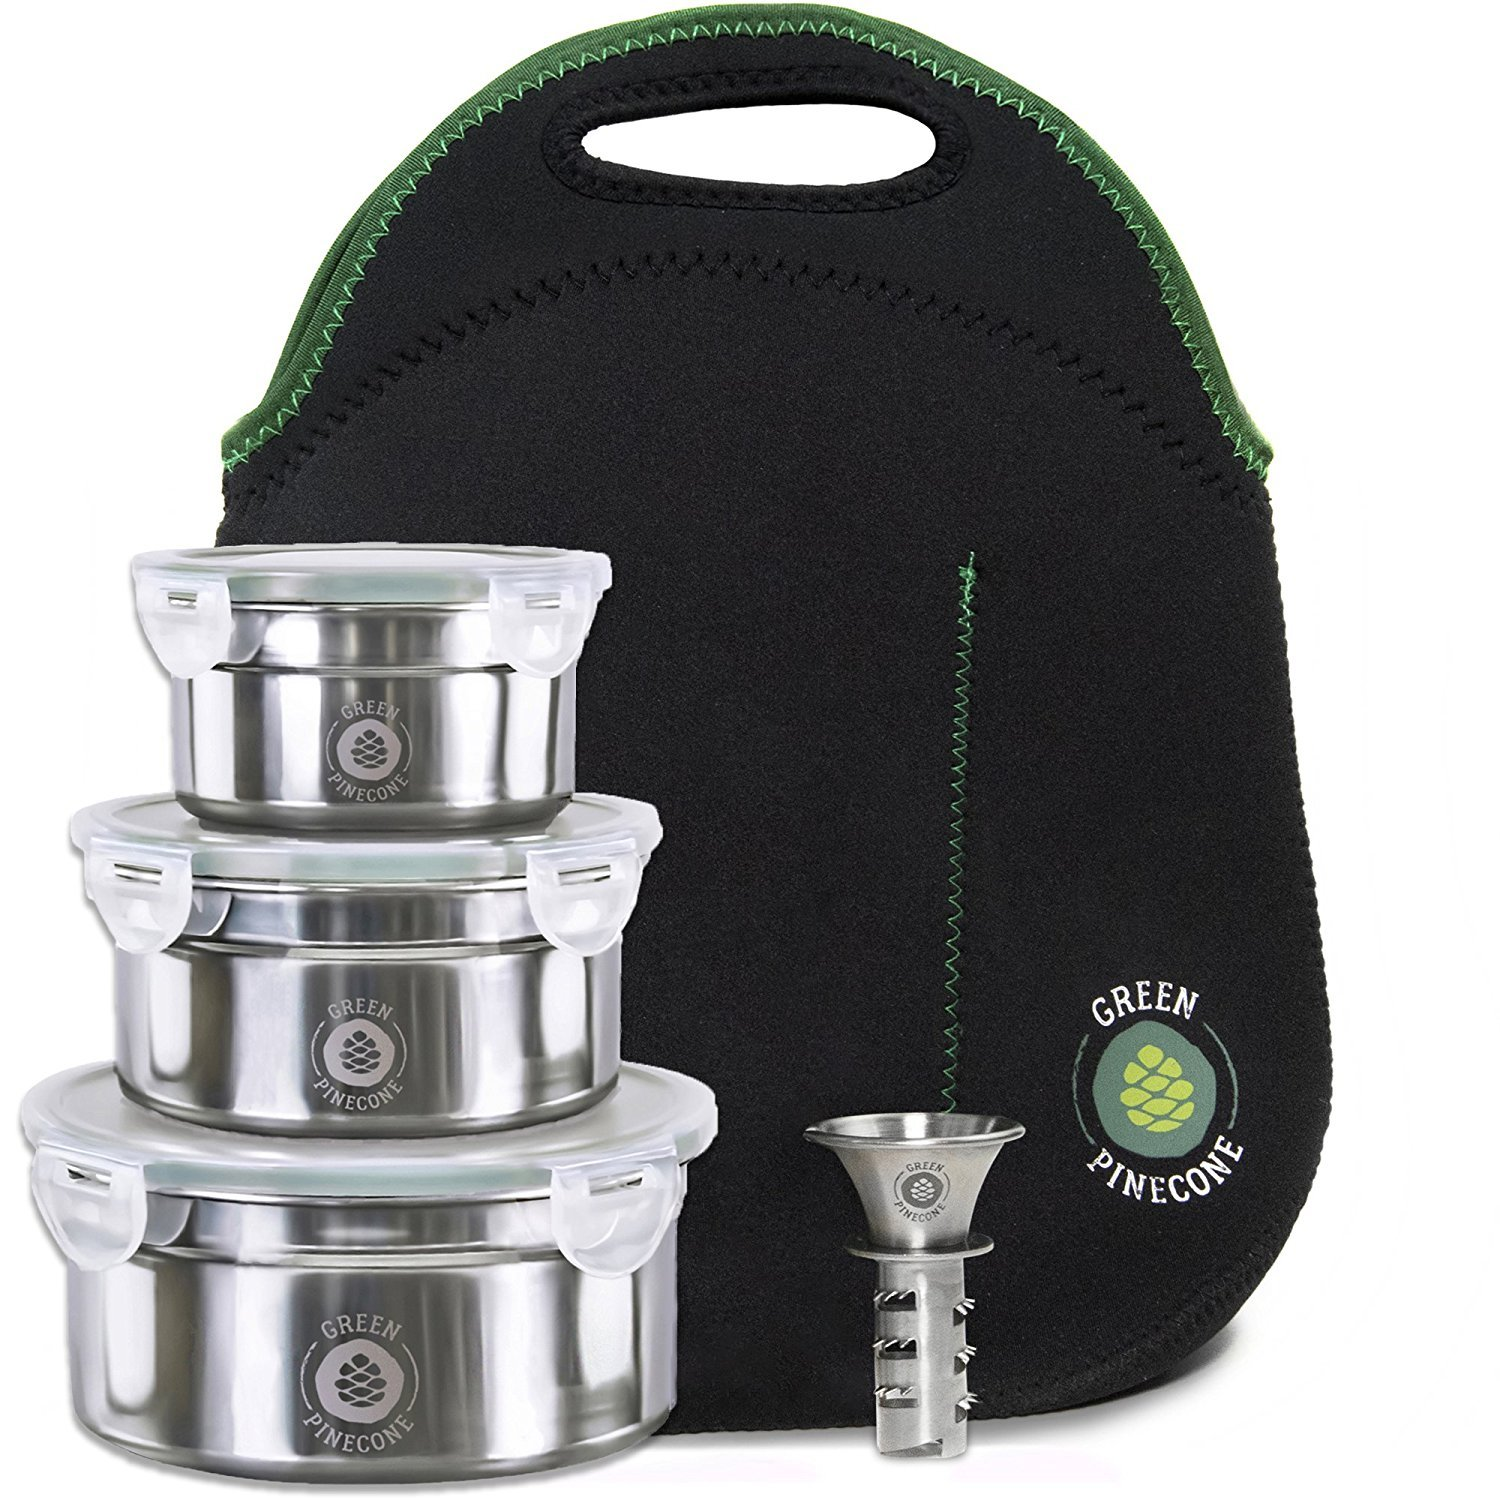 Leakproof Stainless Steel Lunchbox Set. 3 Containers & Thermal Bag: Keep Food Warm or Cool at College, University, Office, School & Travel. Leak Proof Storage. Large, Medium & Small Tins. TWO BONUSES. Green Pinecone